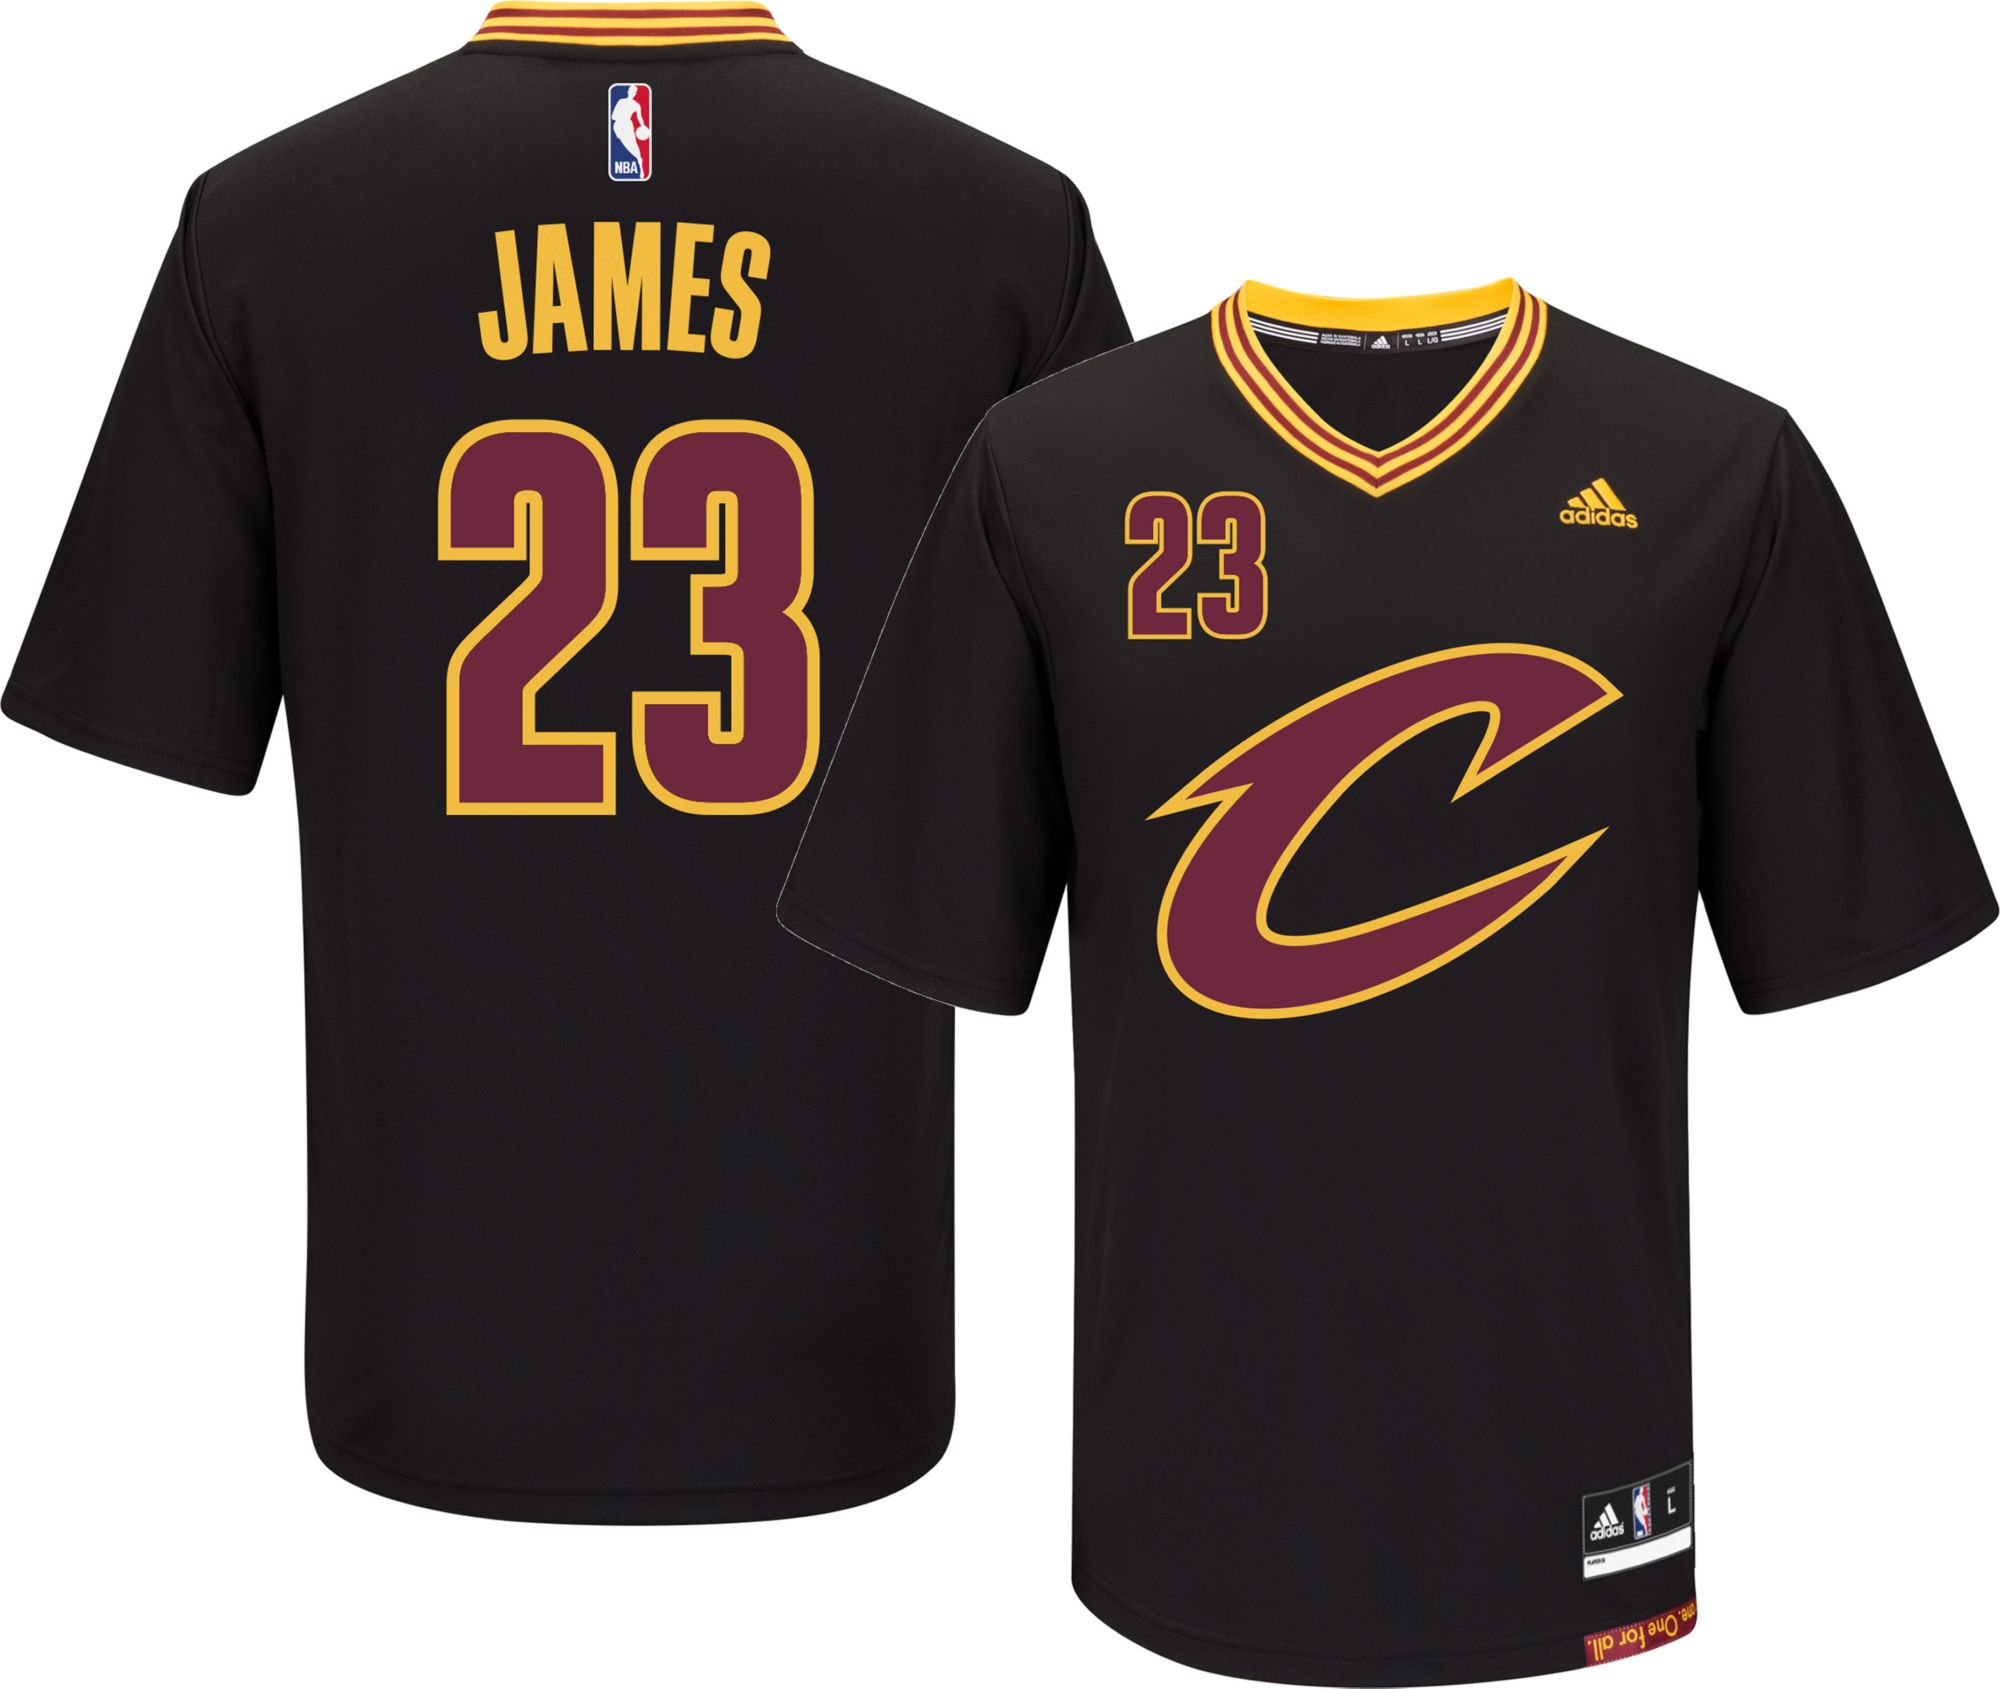 Youth lebron james jerseys for sale international for Lebron shirts for sale